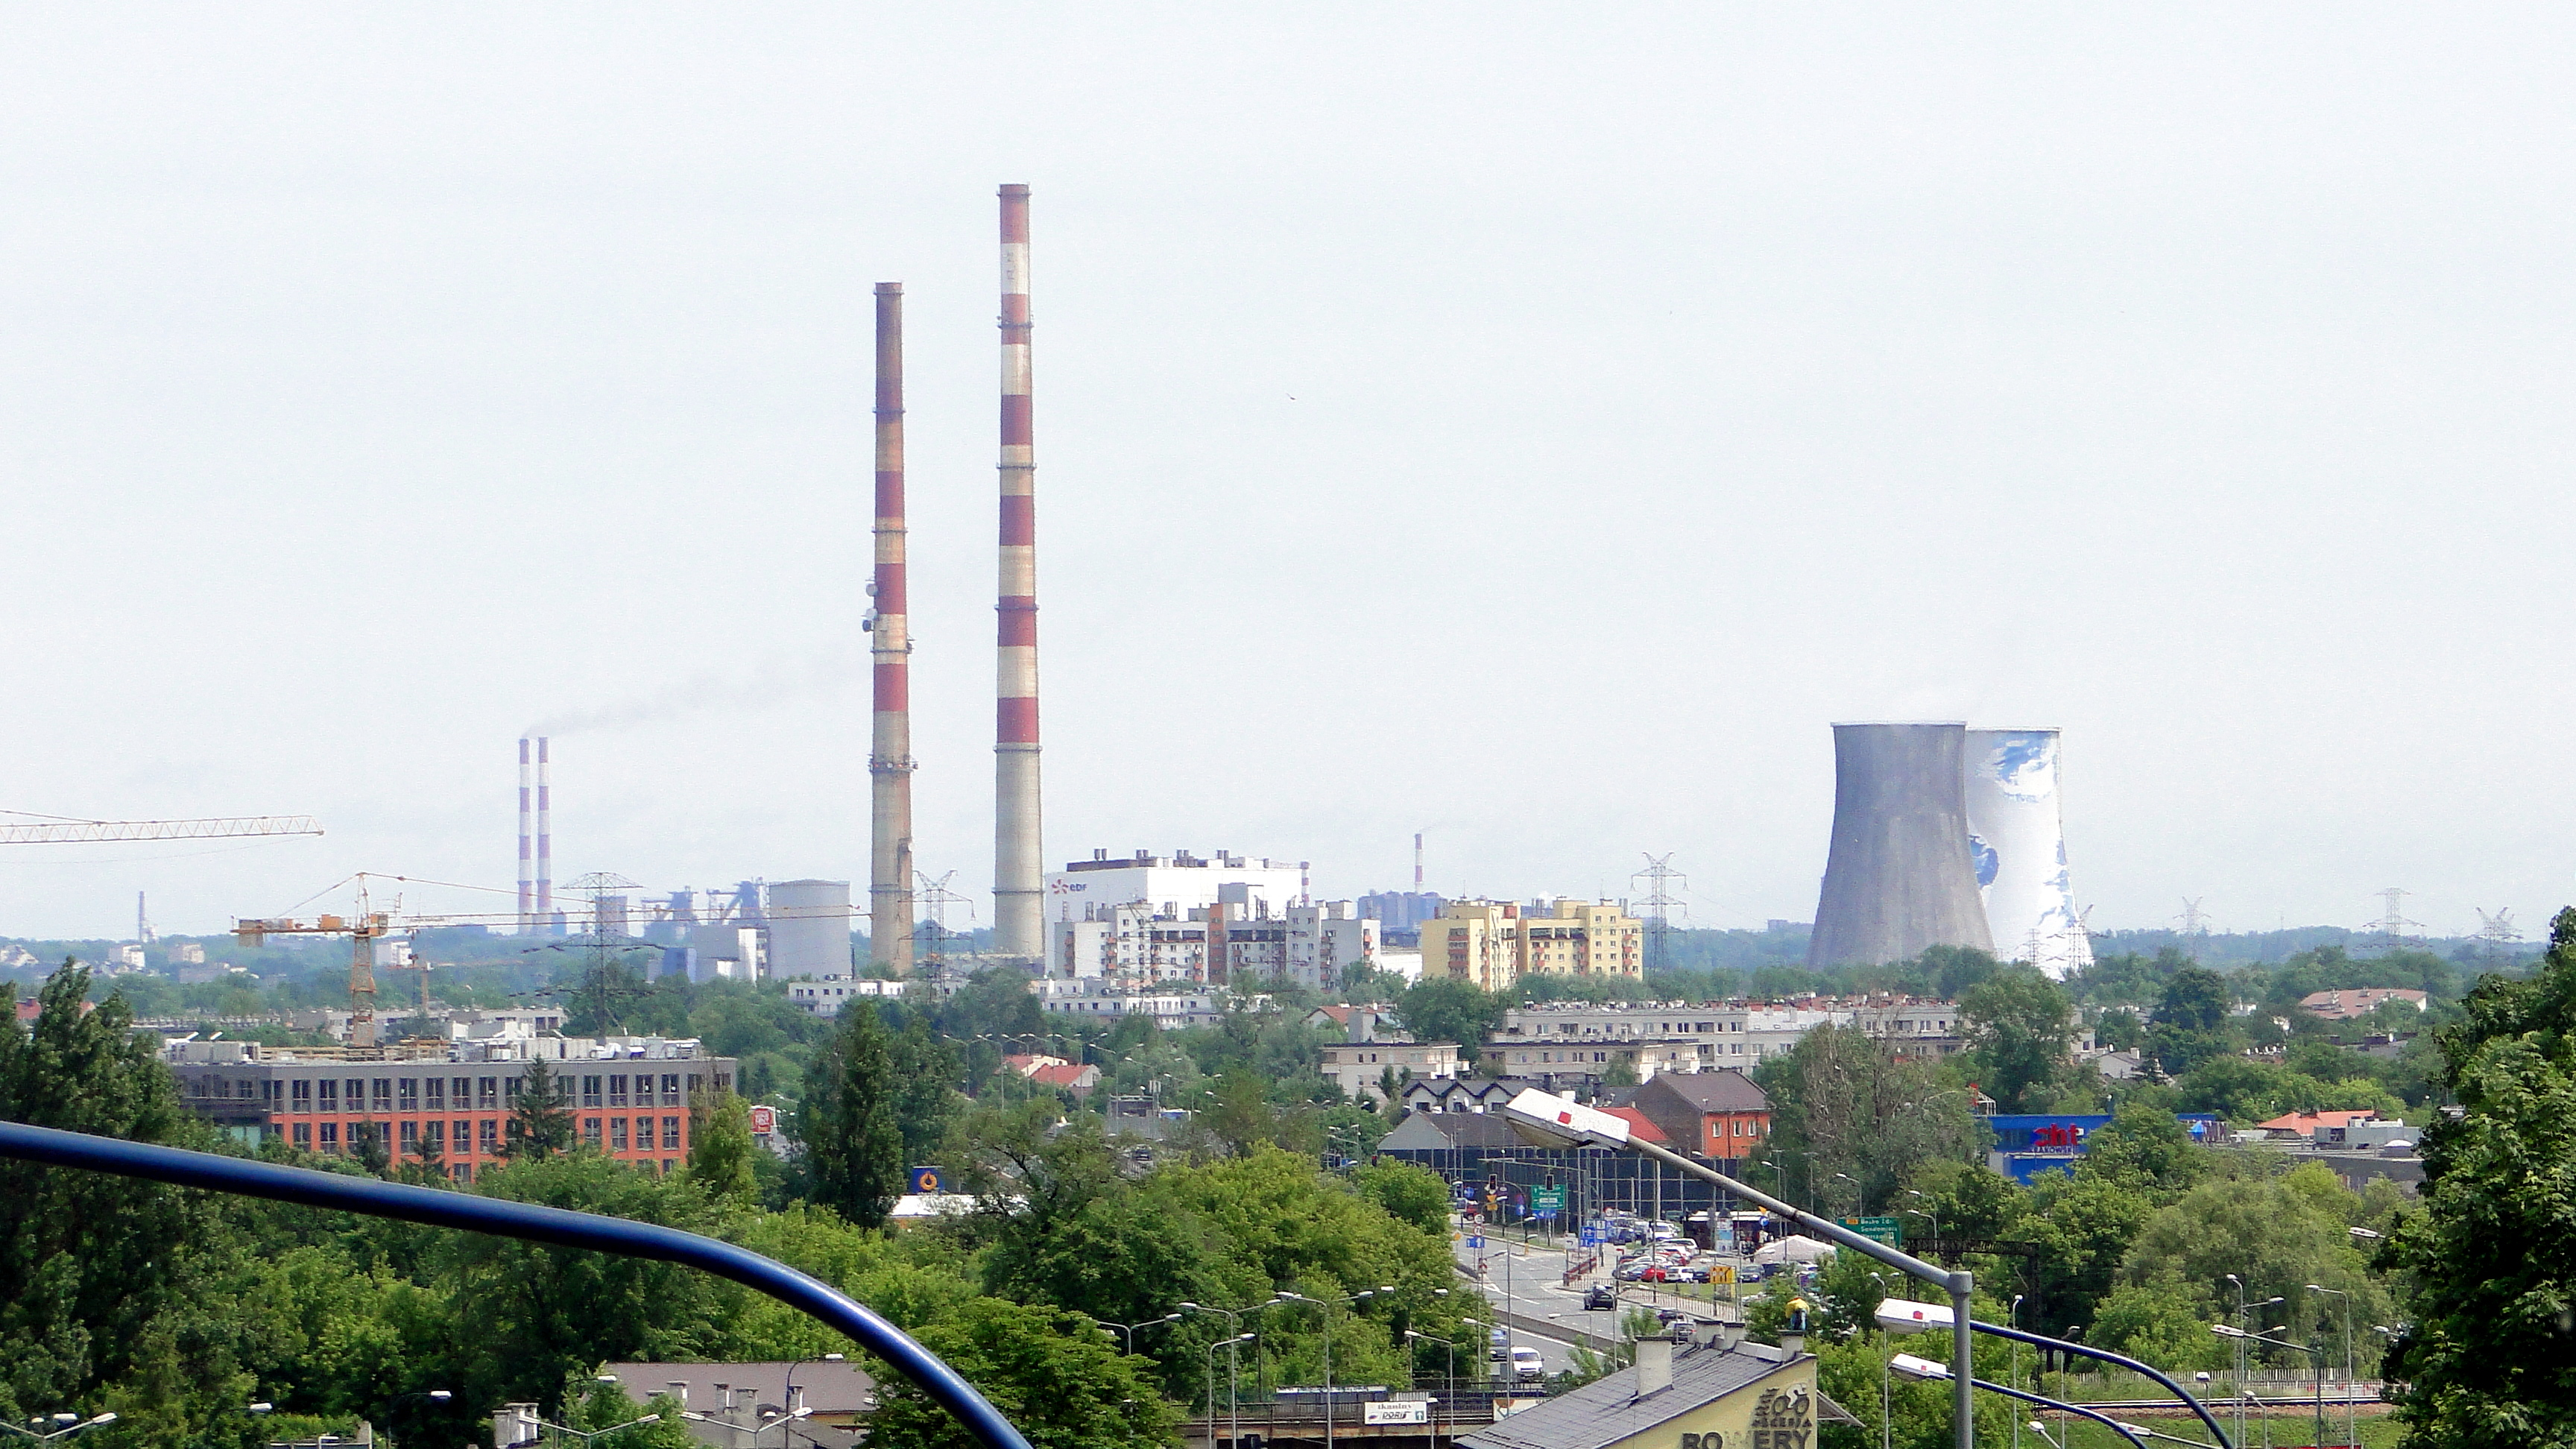 File Łęg Cogeneration and power plant seen from Kopiec Krakusa JPG